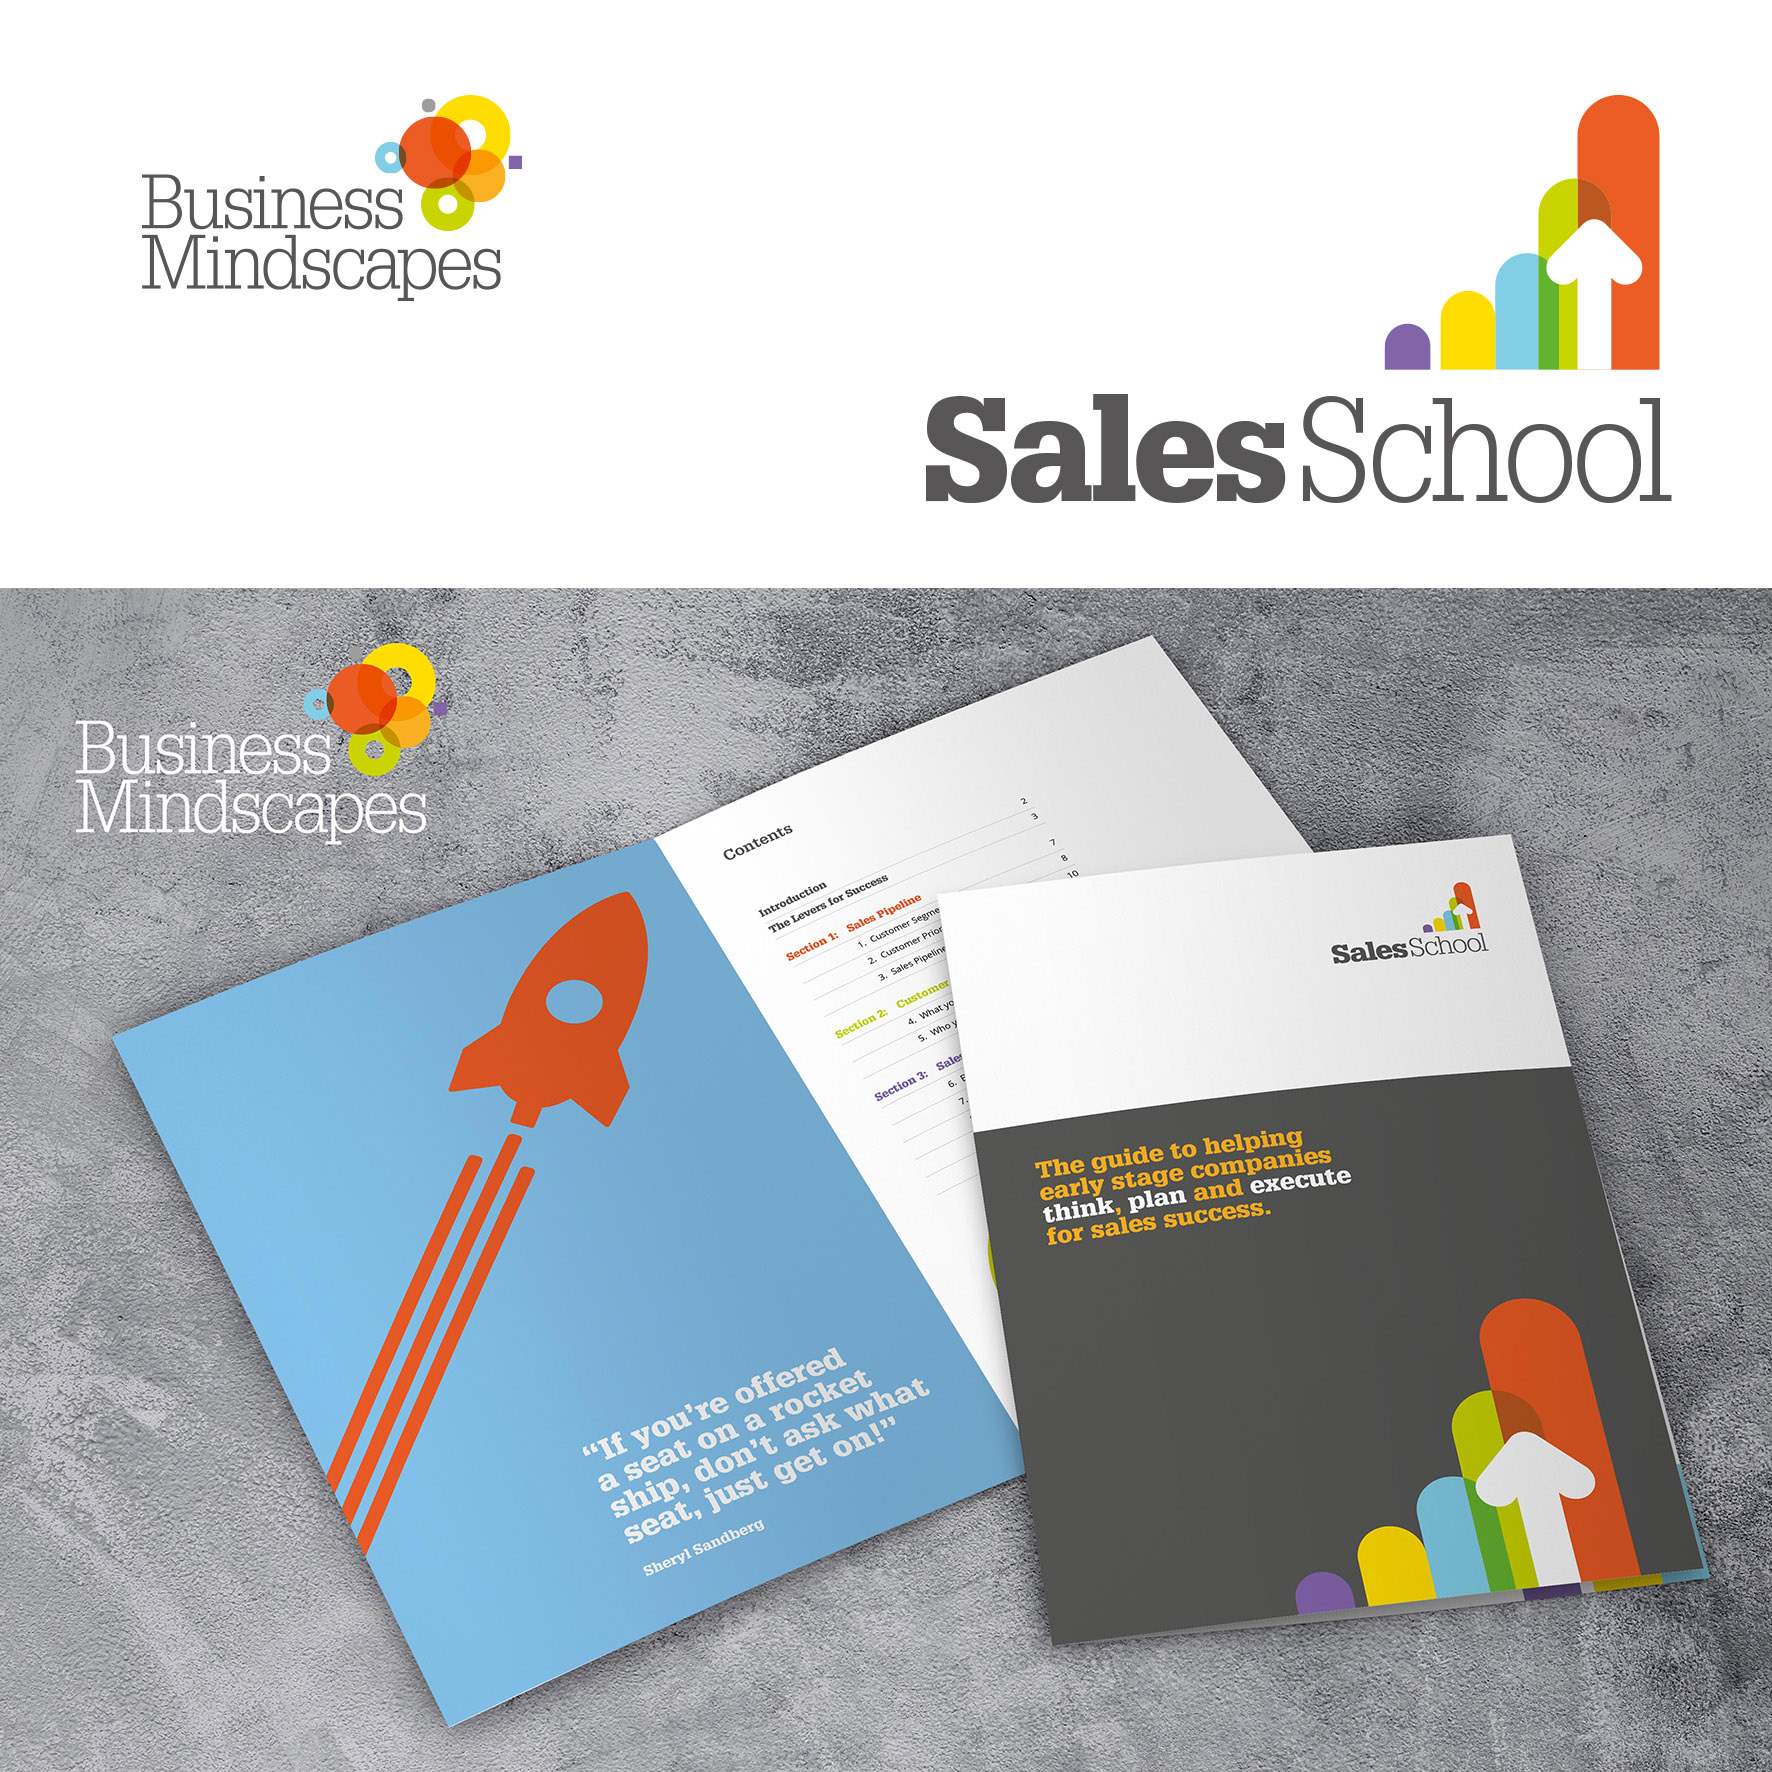 business mindscapes sales school brochures